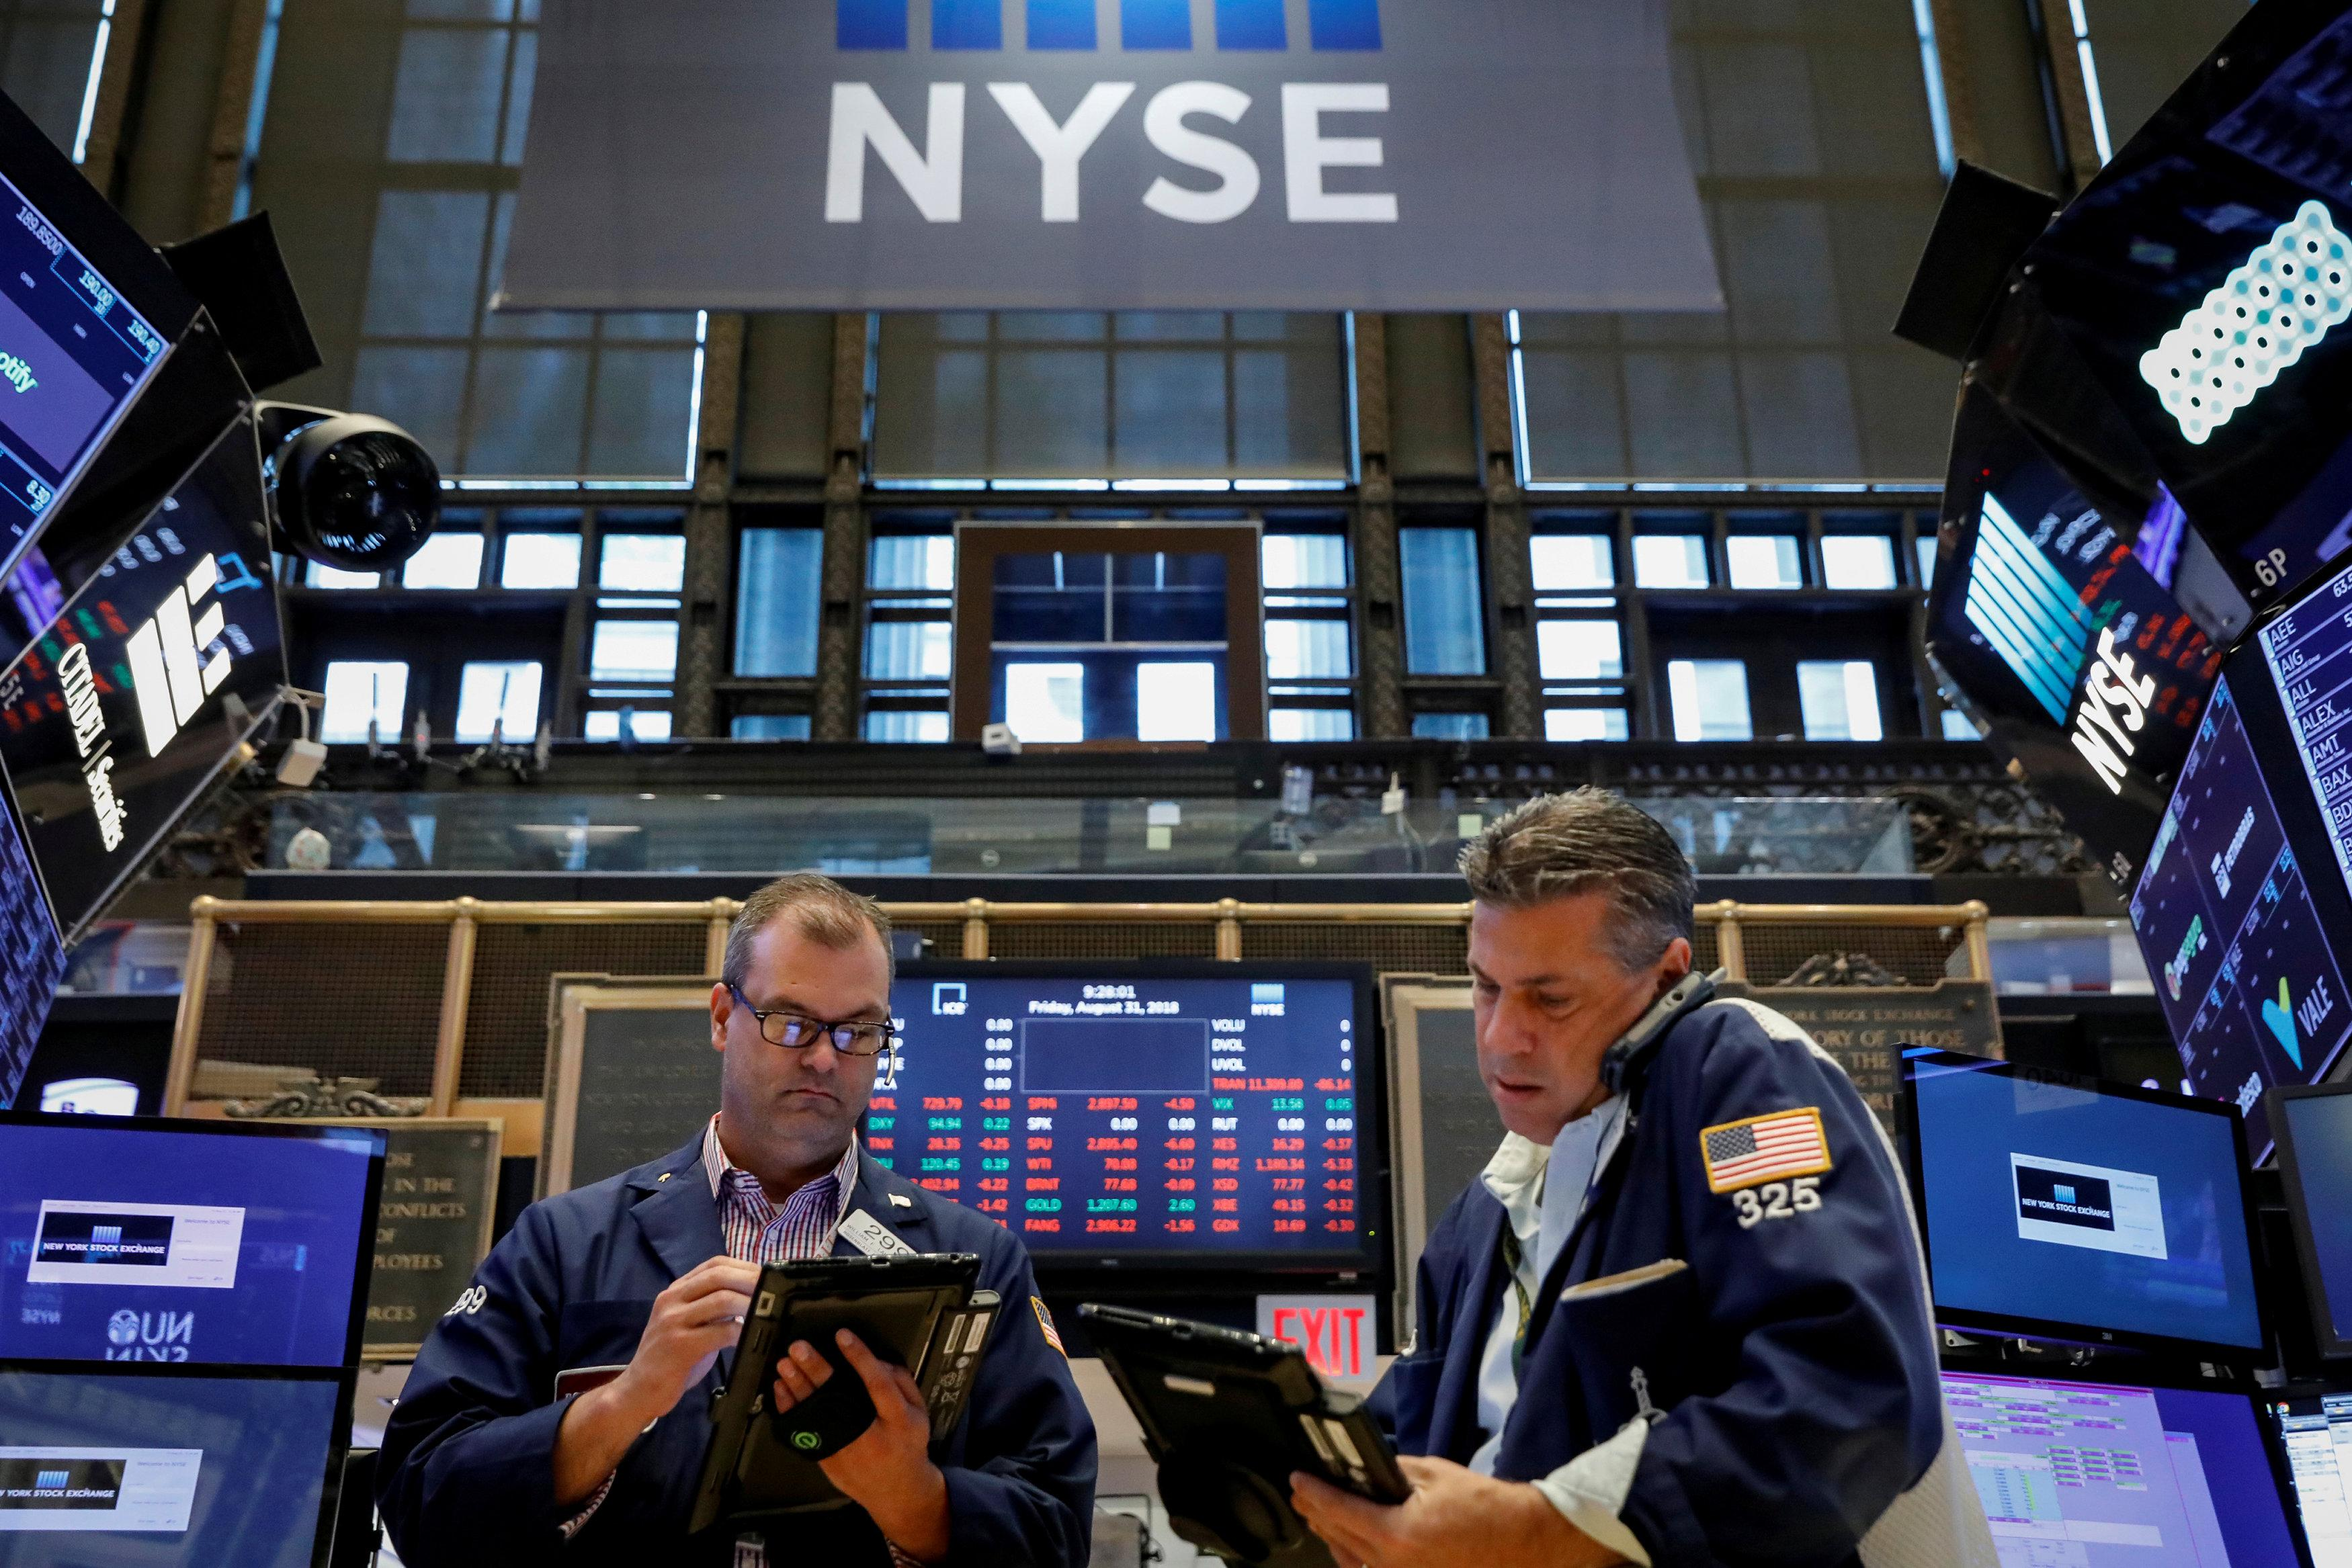 Stocks fall following new home sales declines